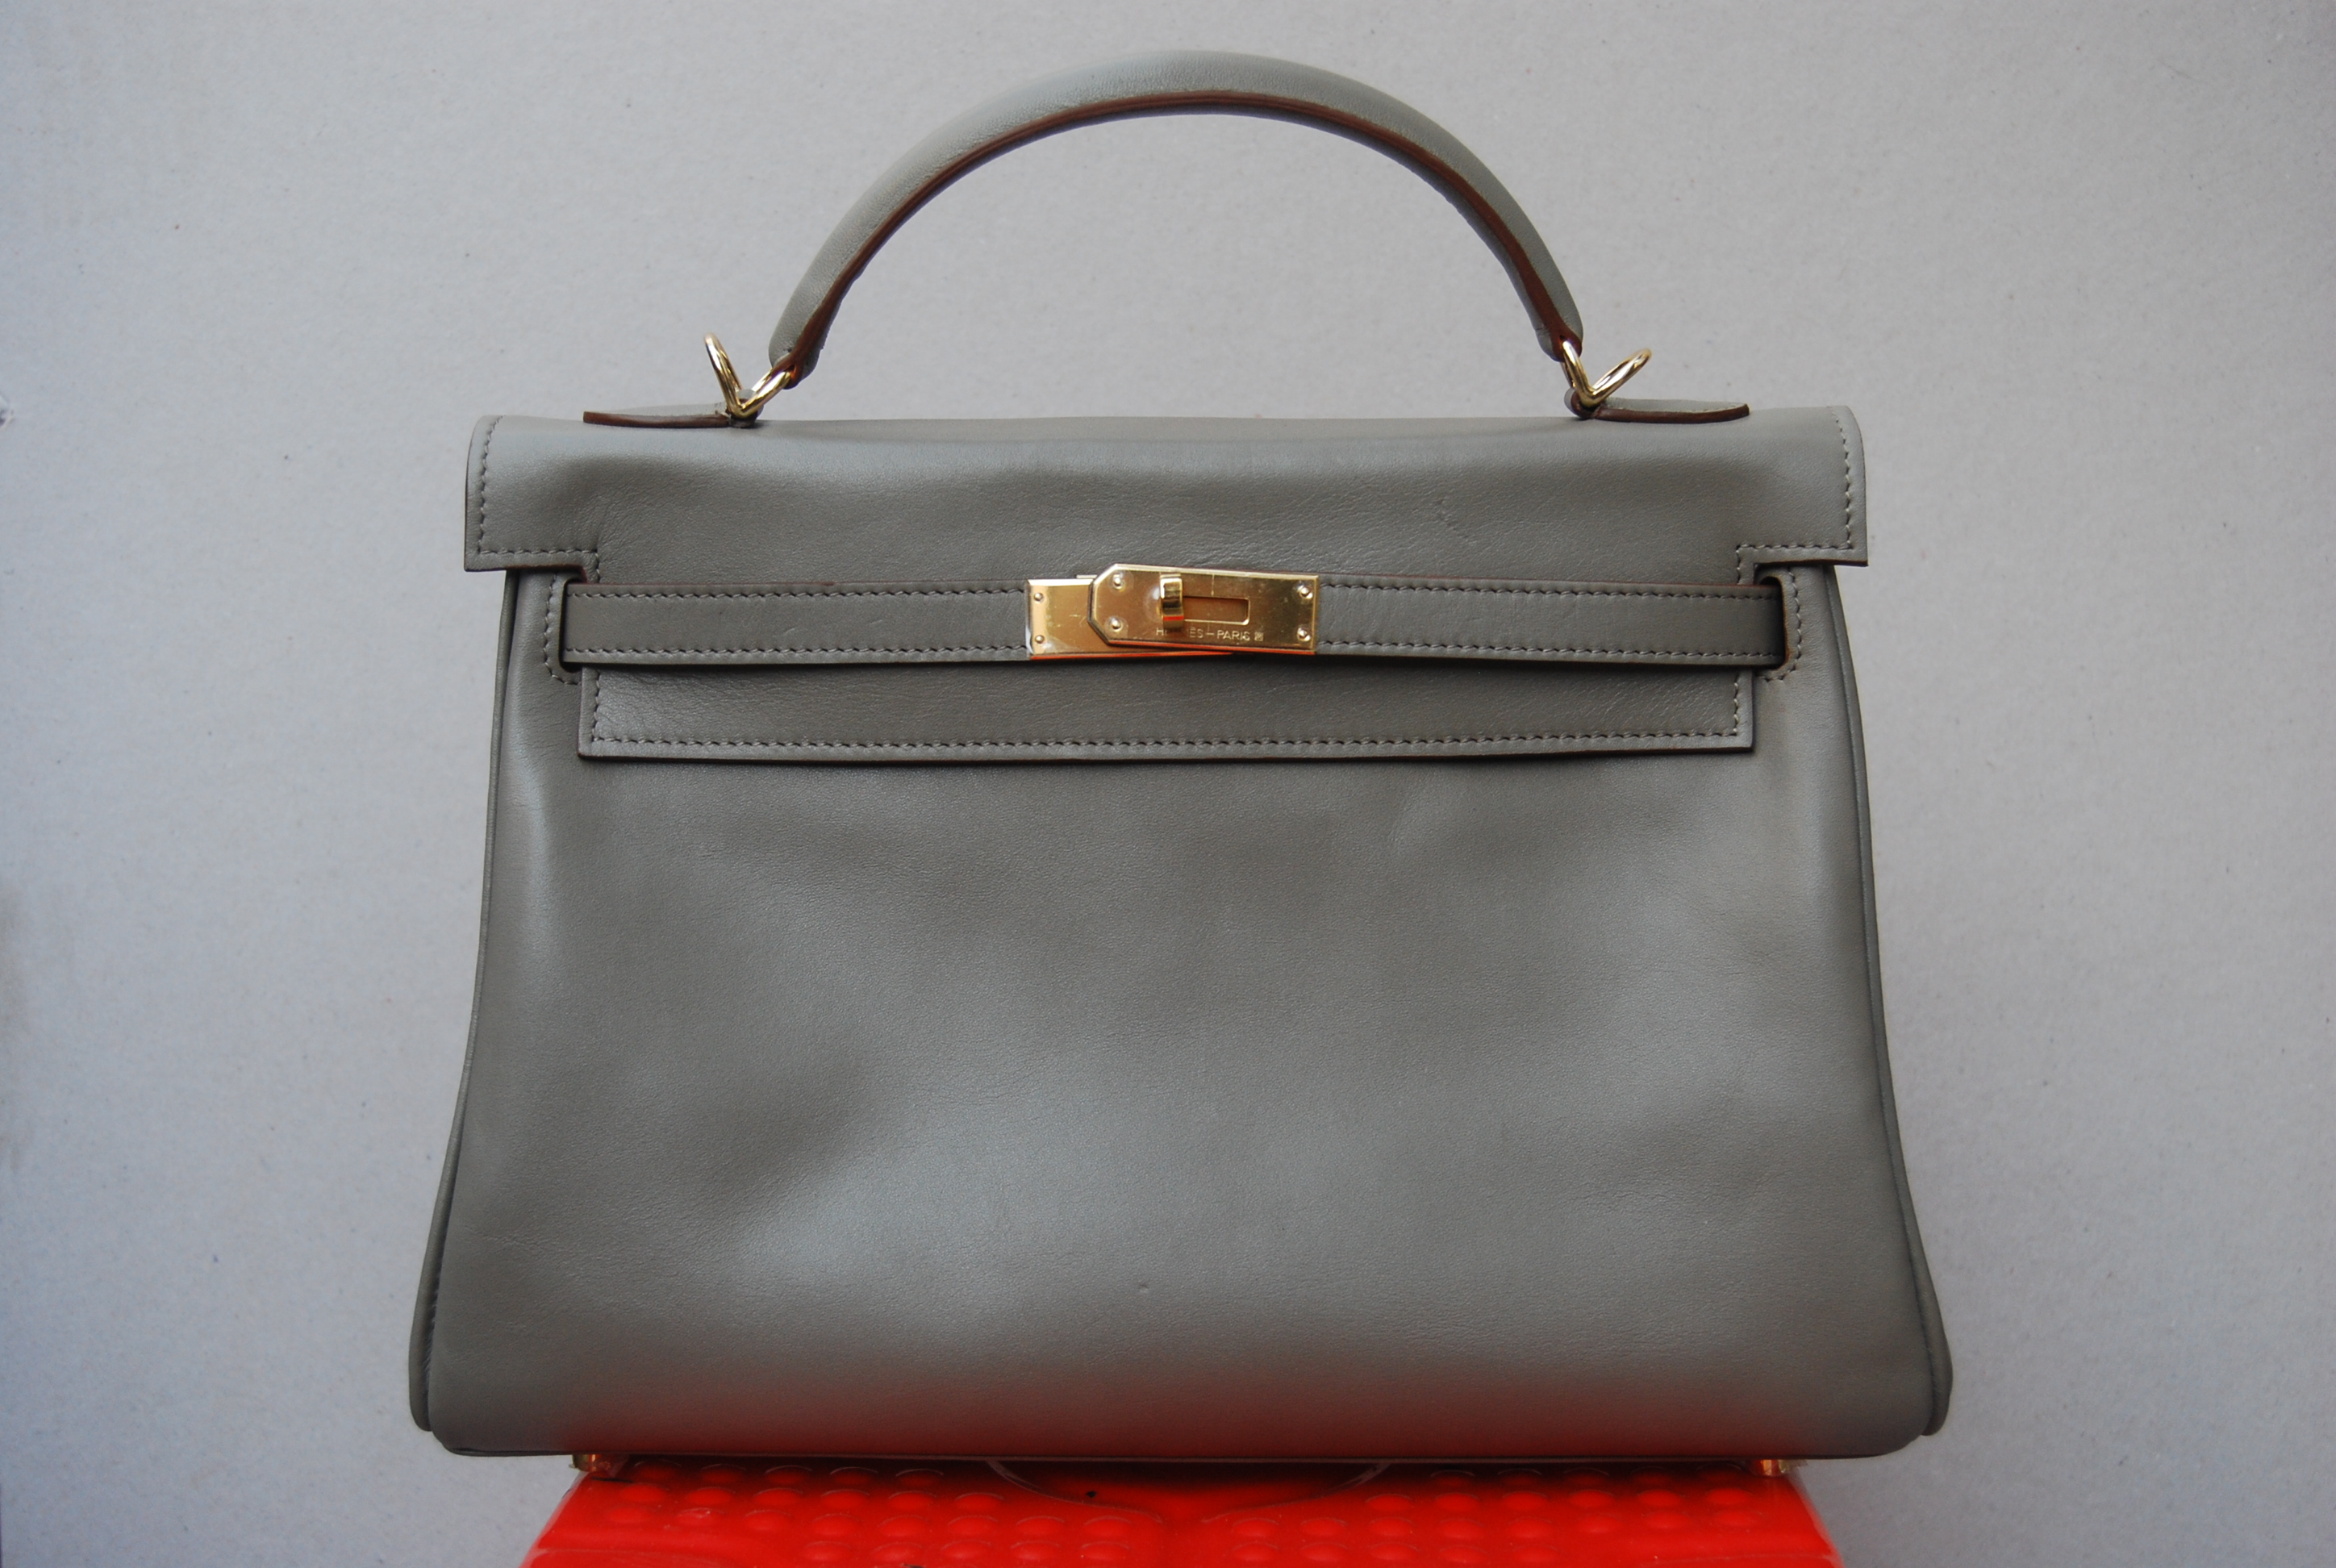 constance wallet hermes - hermes kelly bag replica